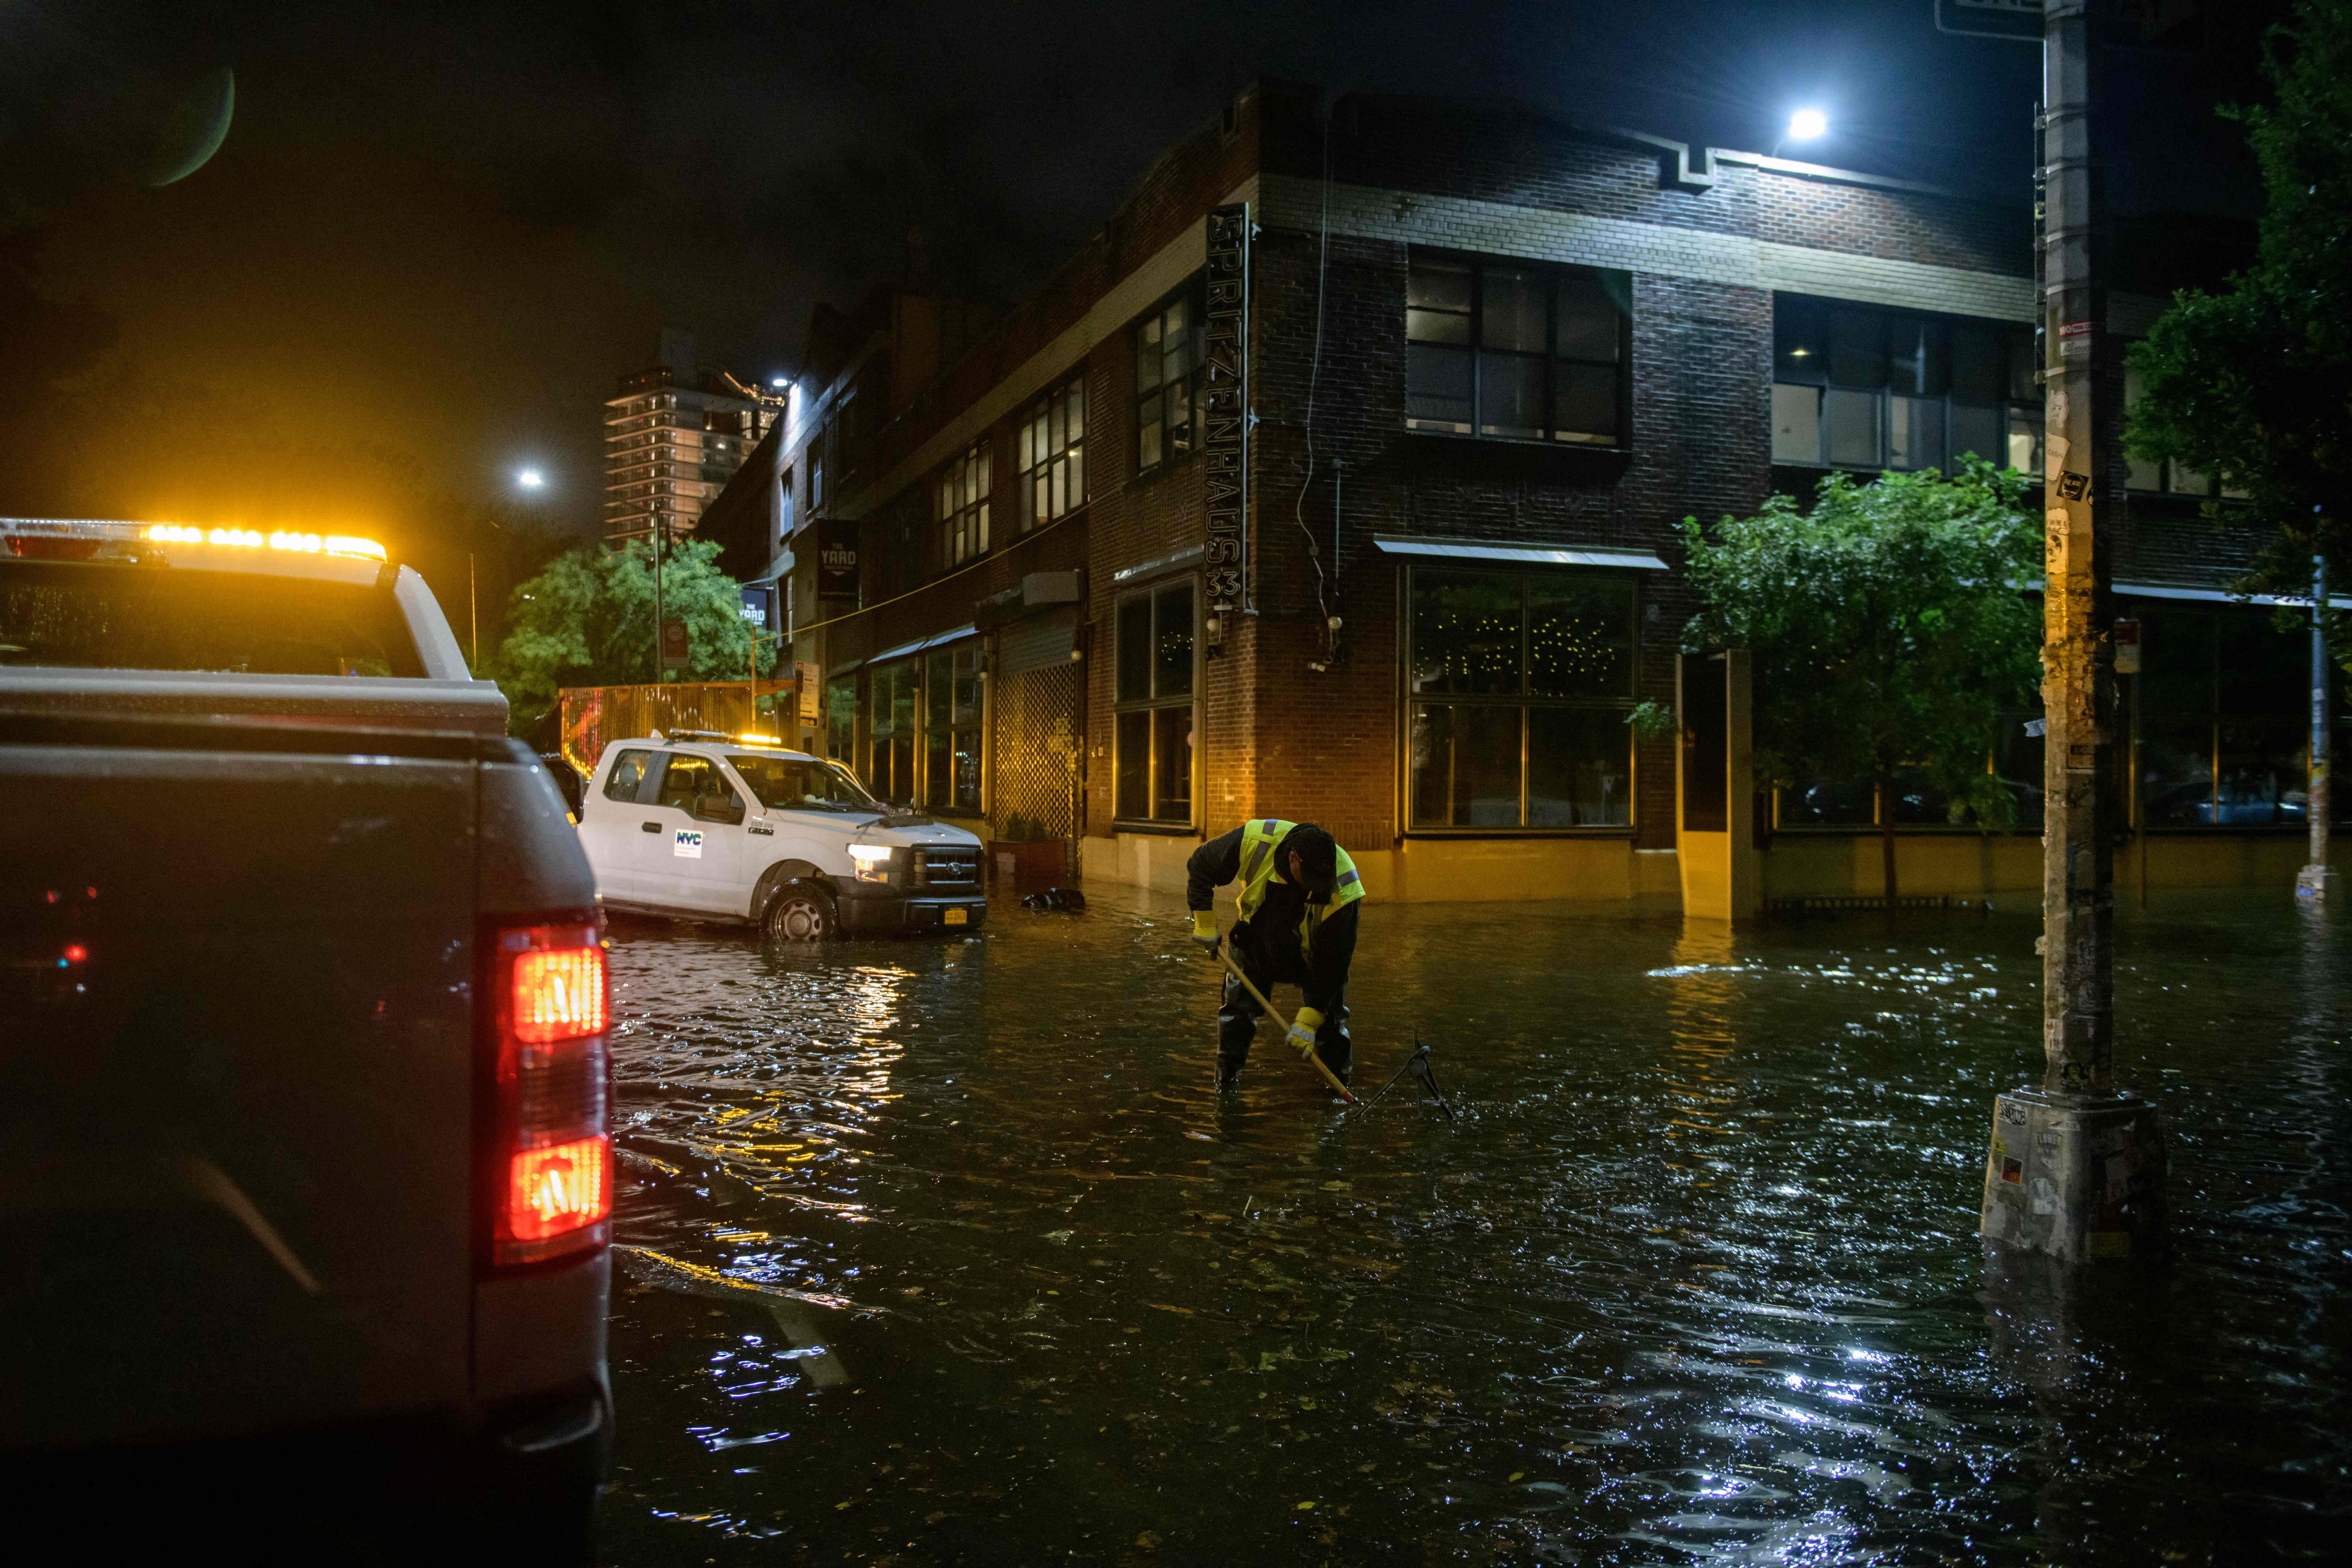 A worker unblocks drains on a street affected by floodwaters in Brooklyn, New York, on September 2.